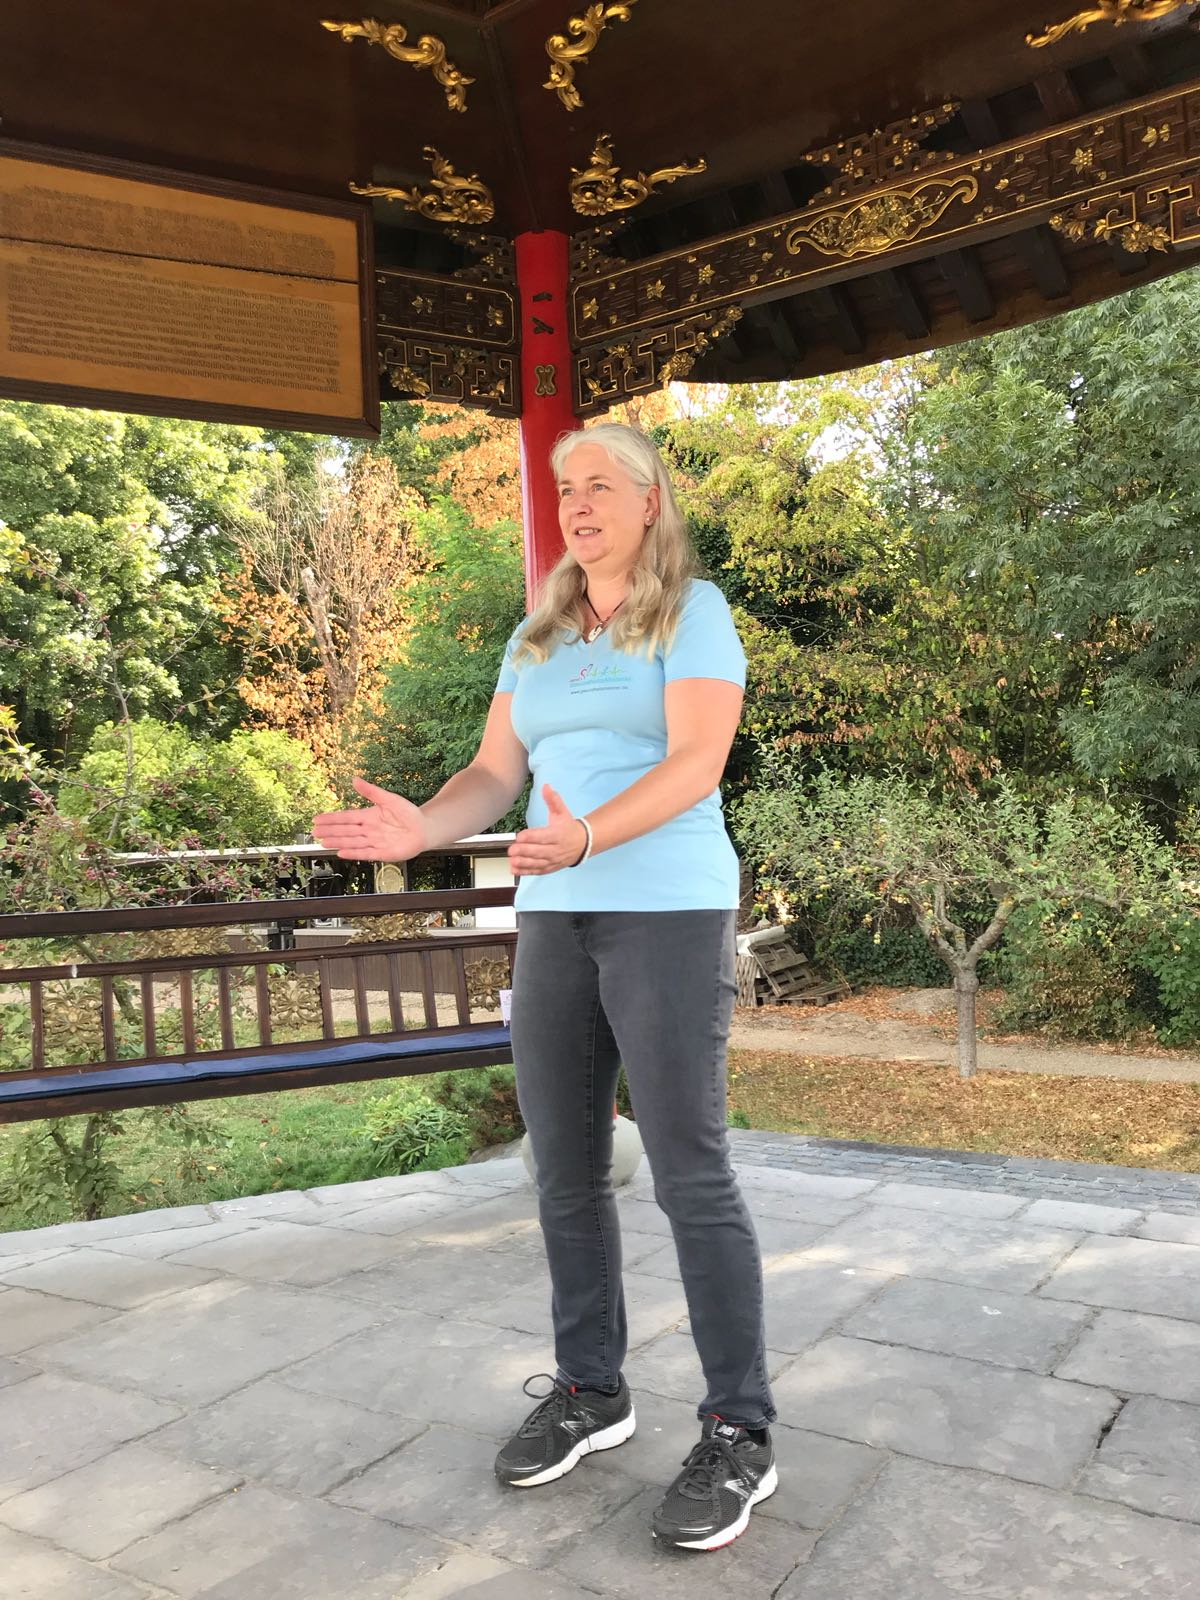 Qi Gong outside – Alte Stadtgärtnerei Düren